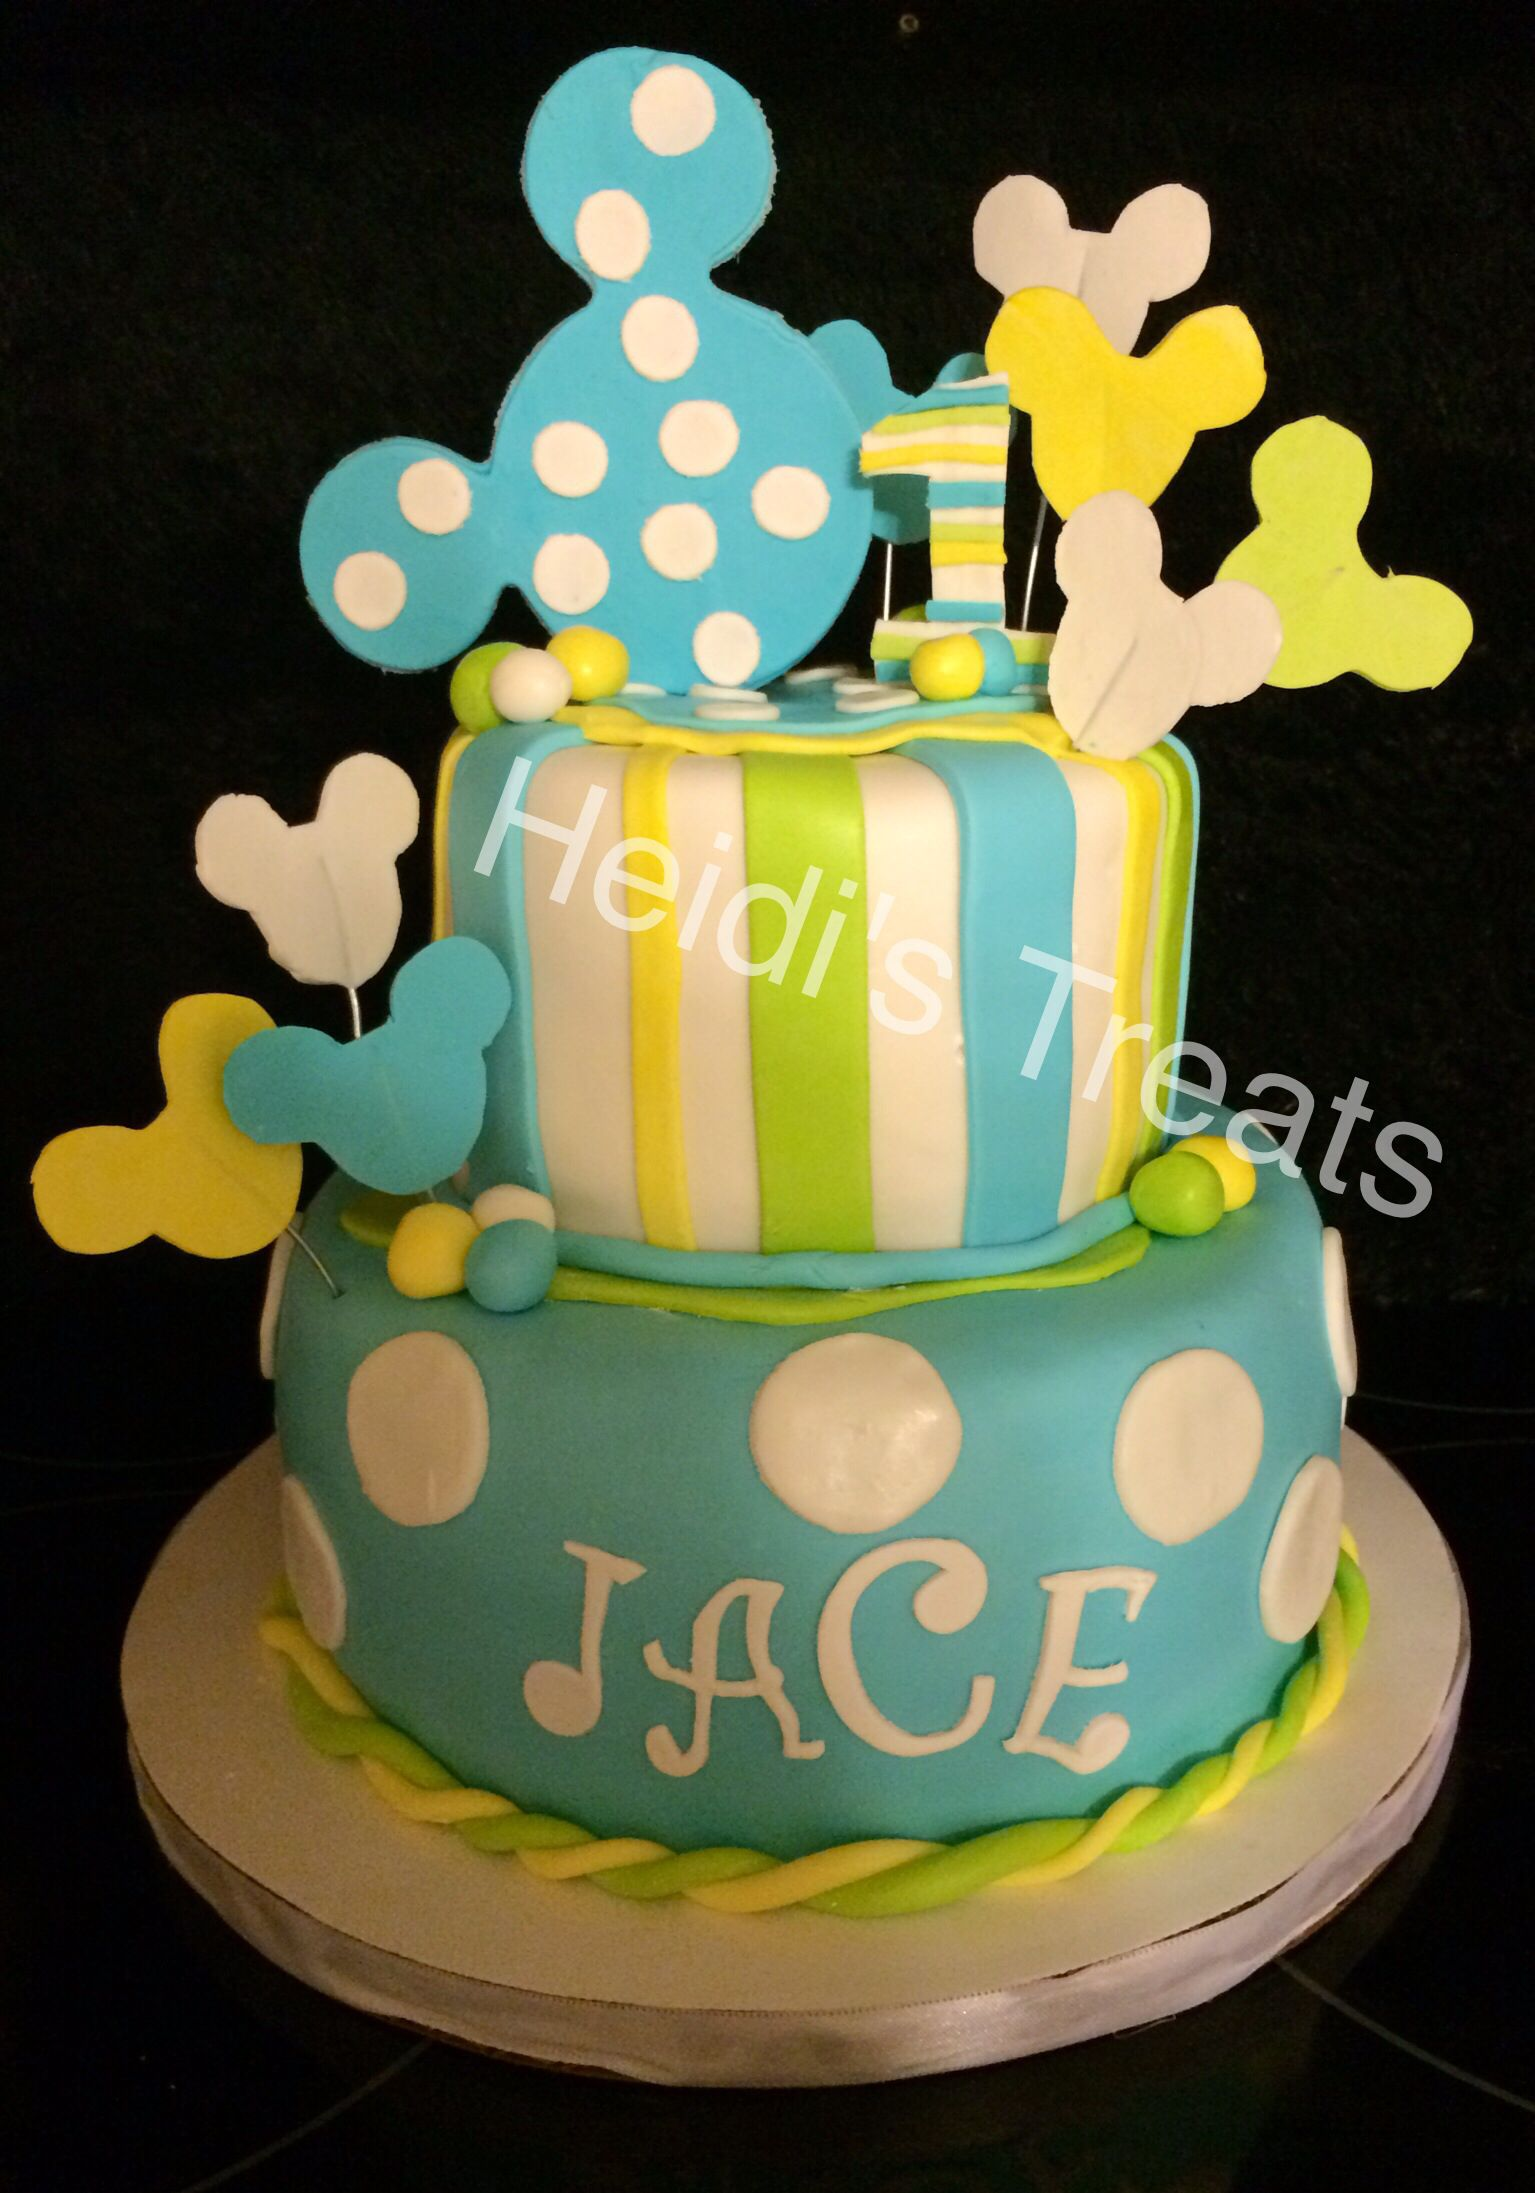 Baby Mickey Mouse Edible Cake Decorations Mickey Mouse Edible Image Sheets Baby Mickey Mouse 1st Edible